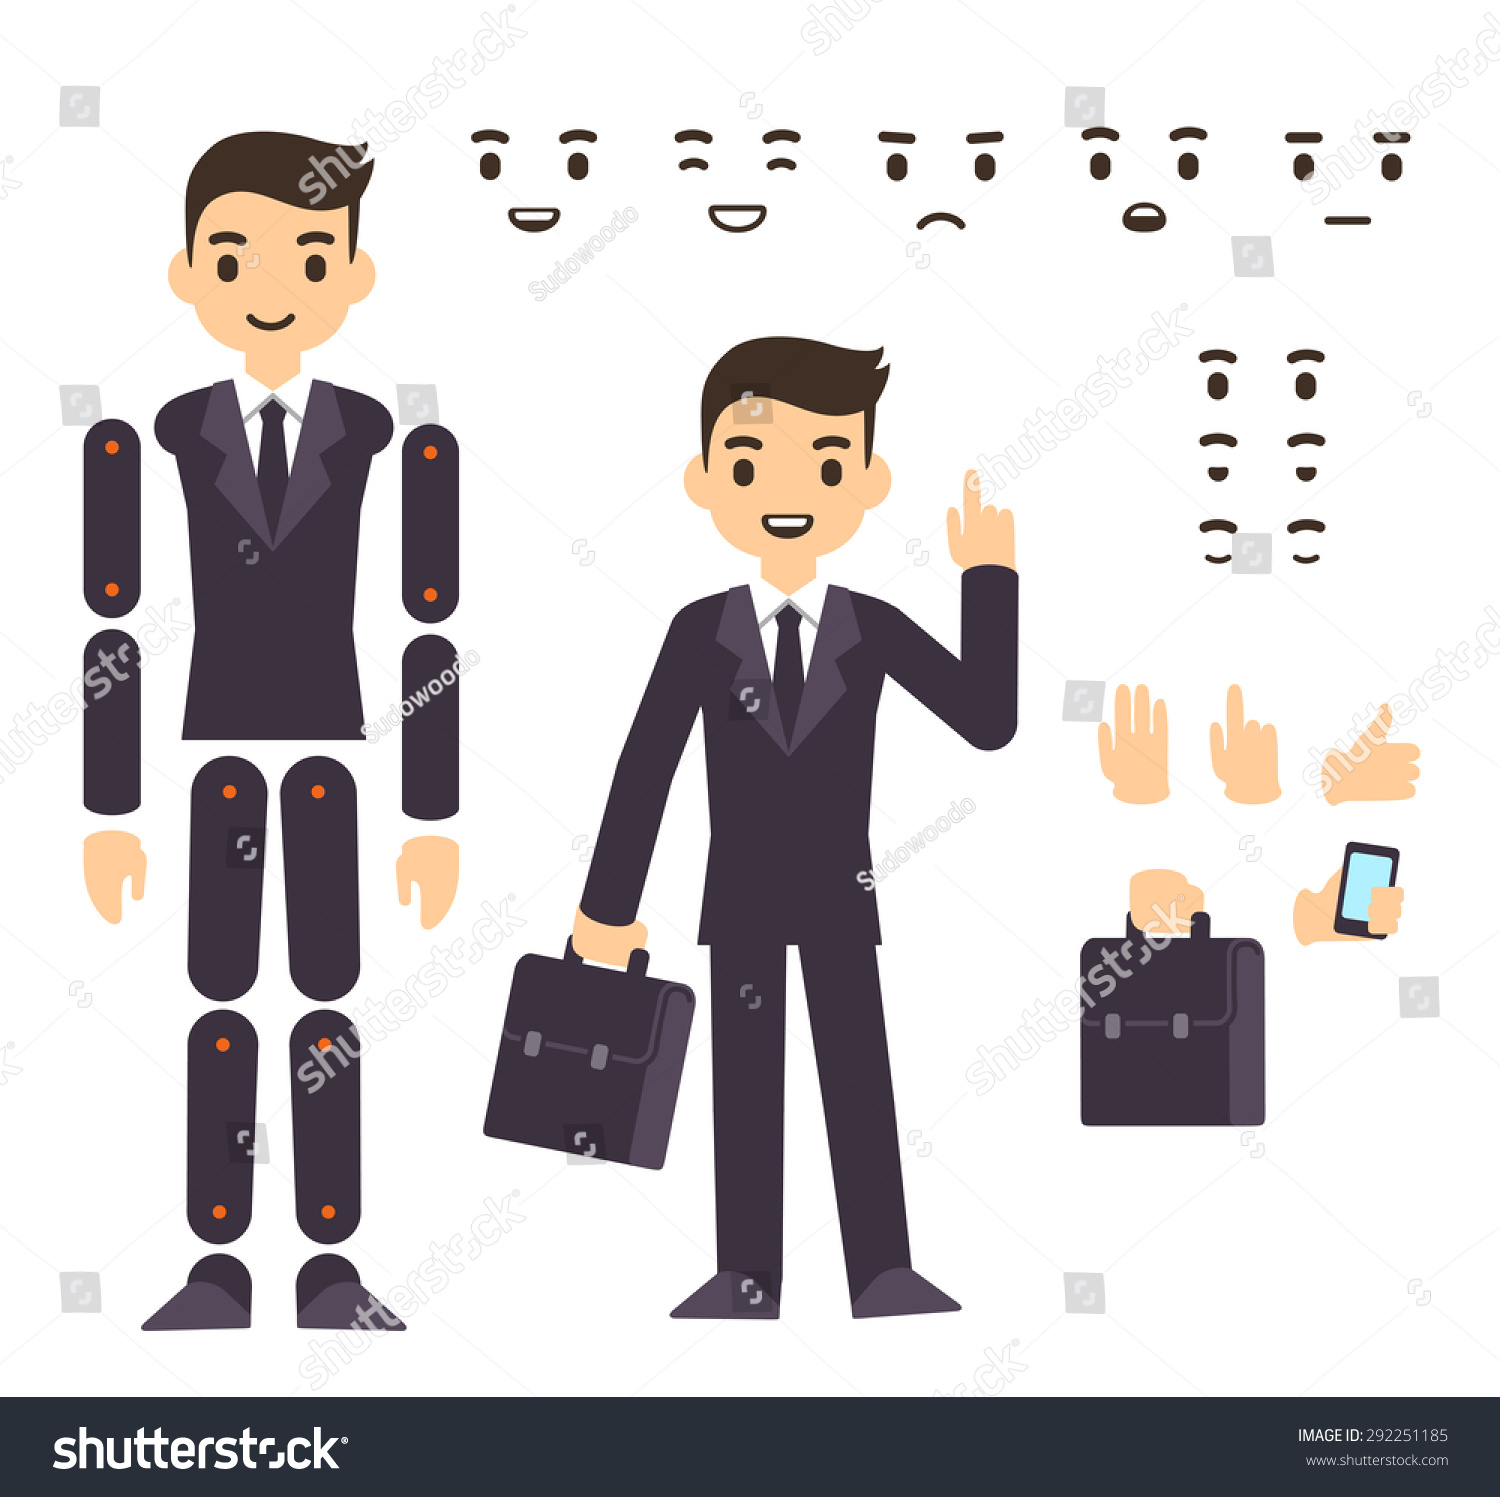 Cartoon Characters In Suits : Young businessman cartoon character in formal suit